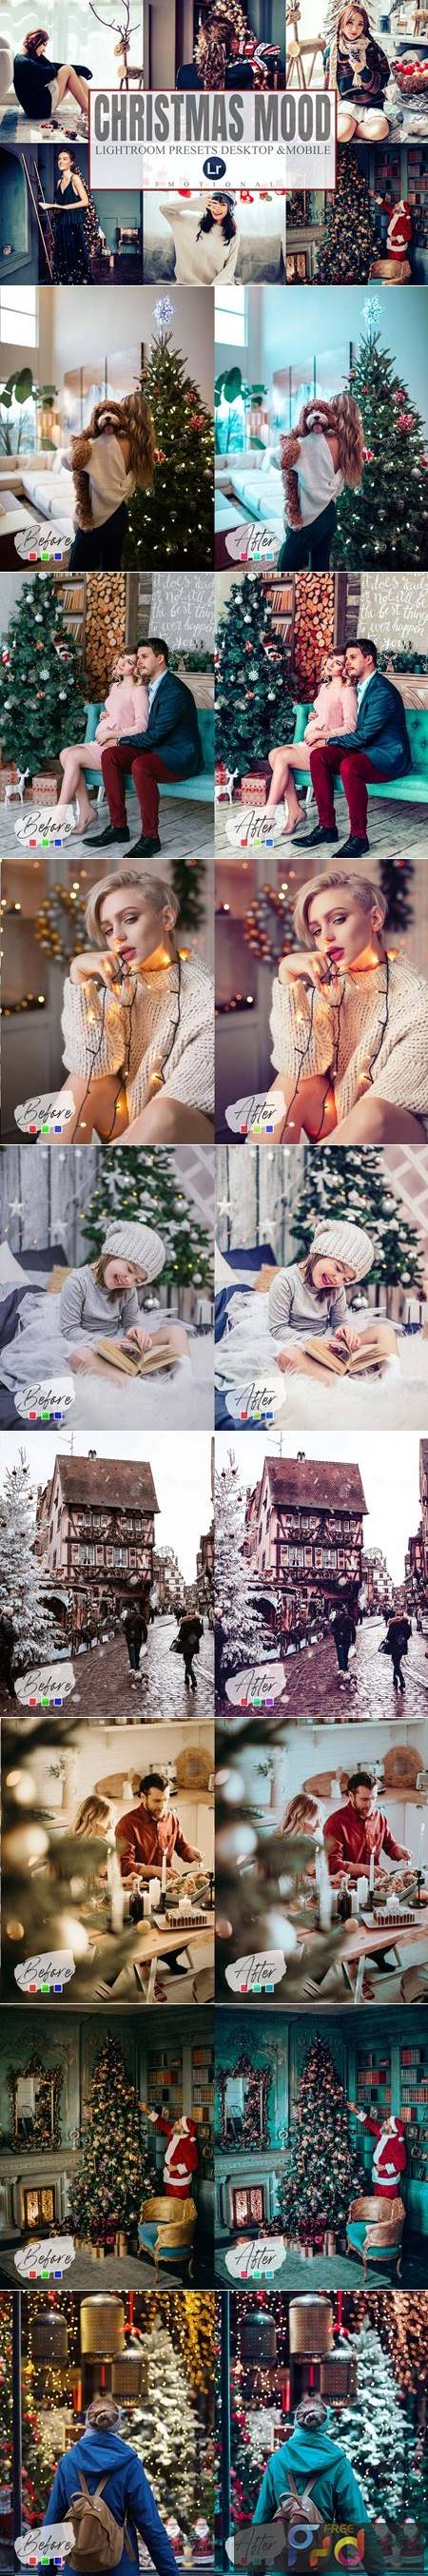 15 Christmas Lightroom Presets 5581592 1